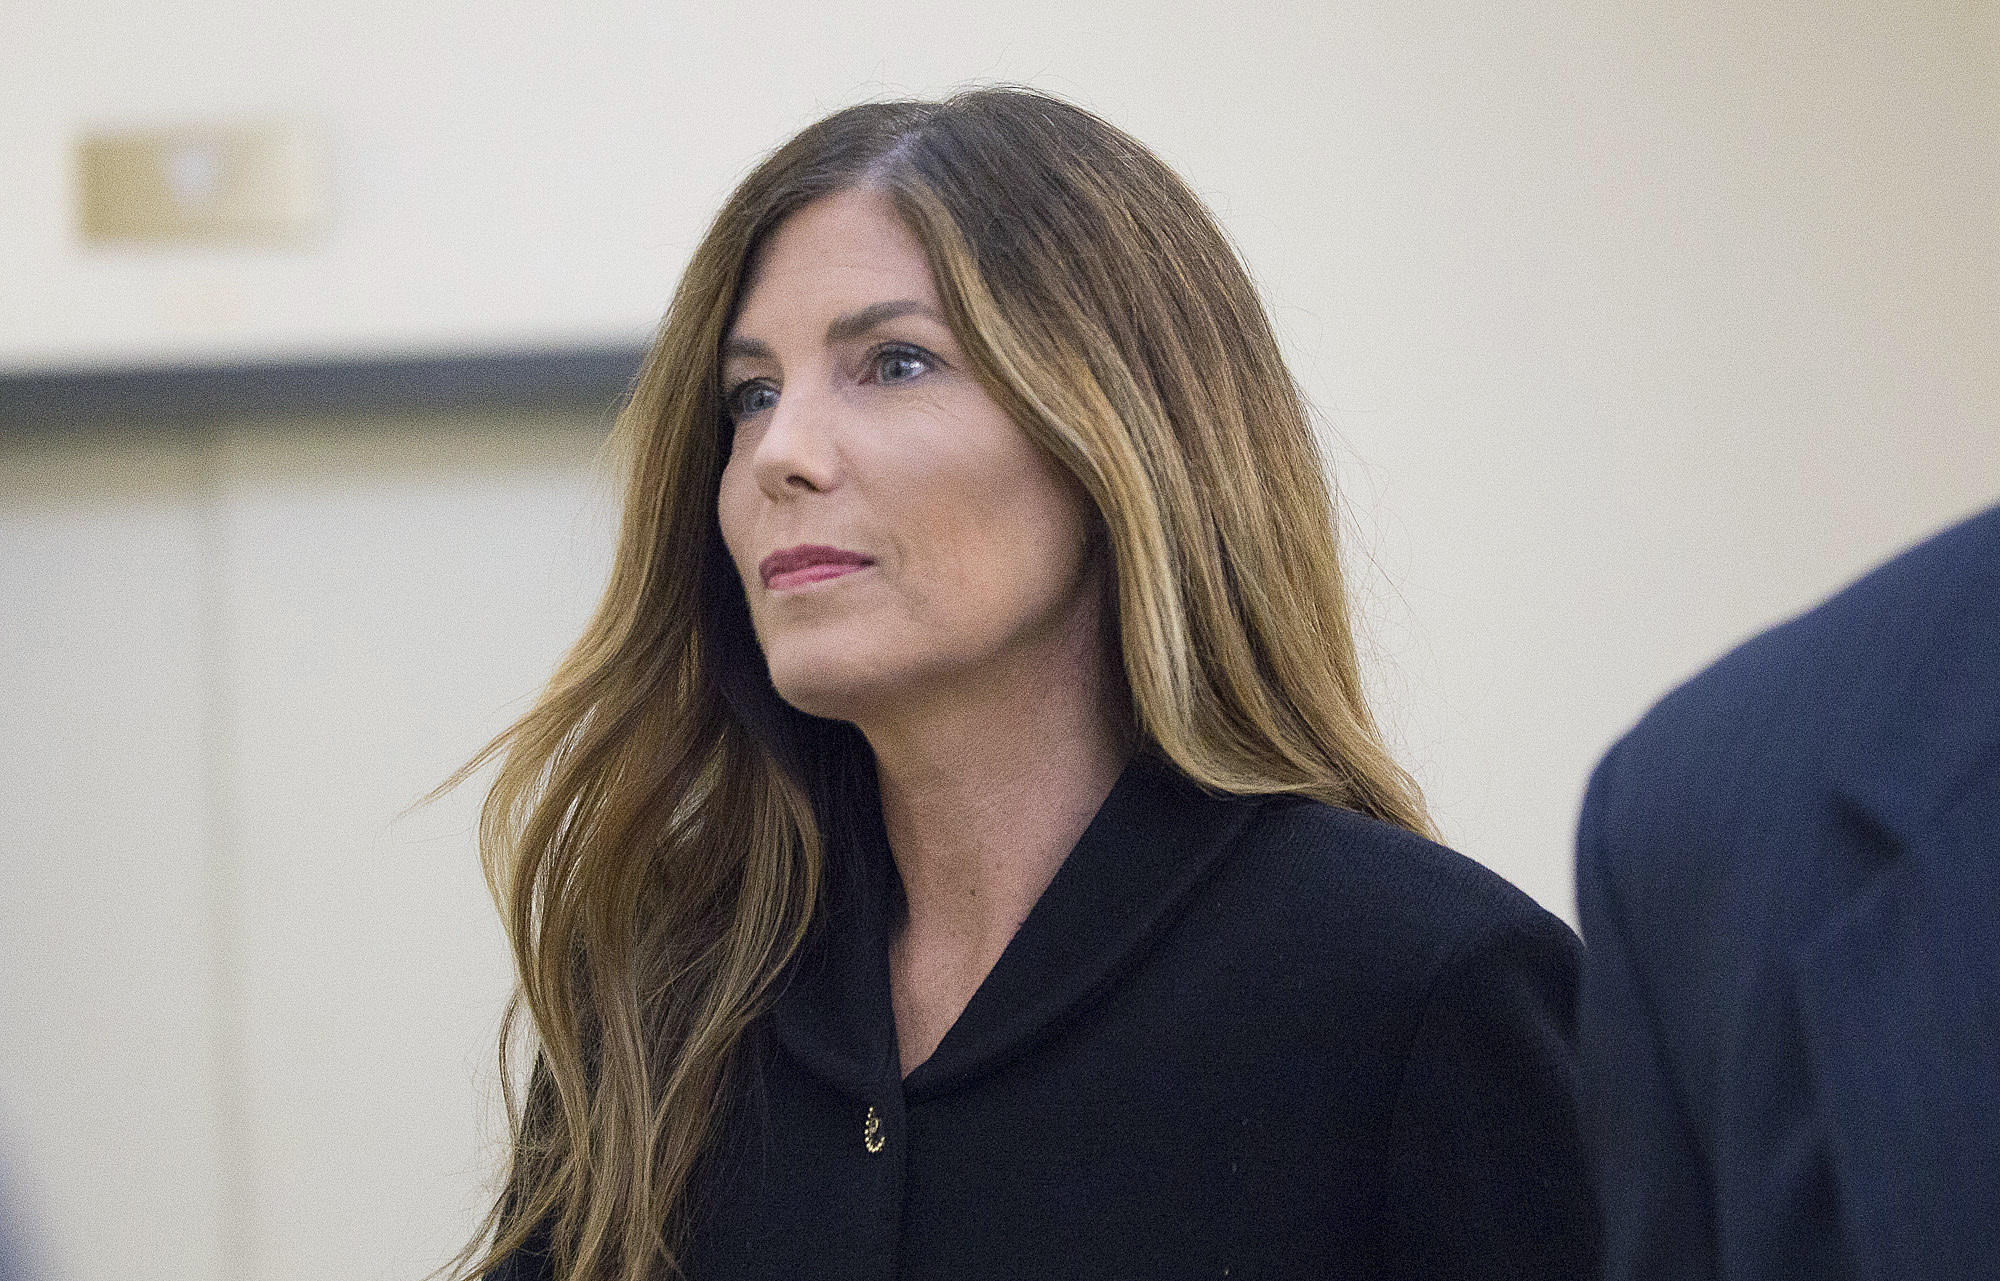 Embattled Pennsylvania Attorney General Resigns After Perjury Conviction